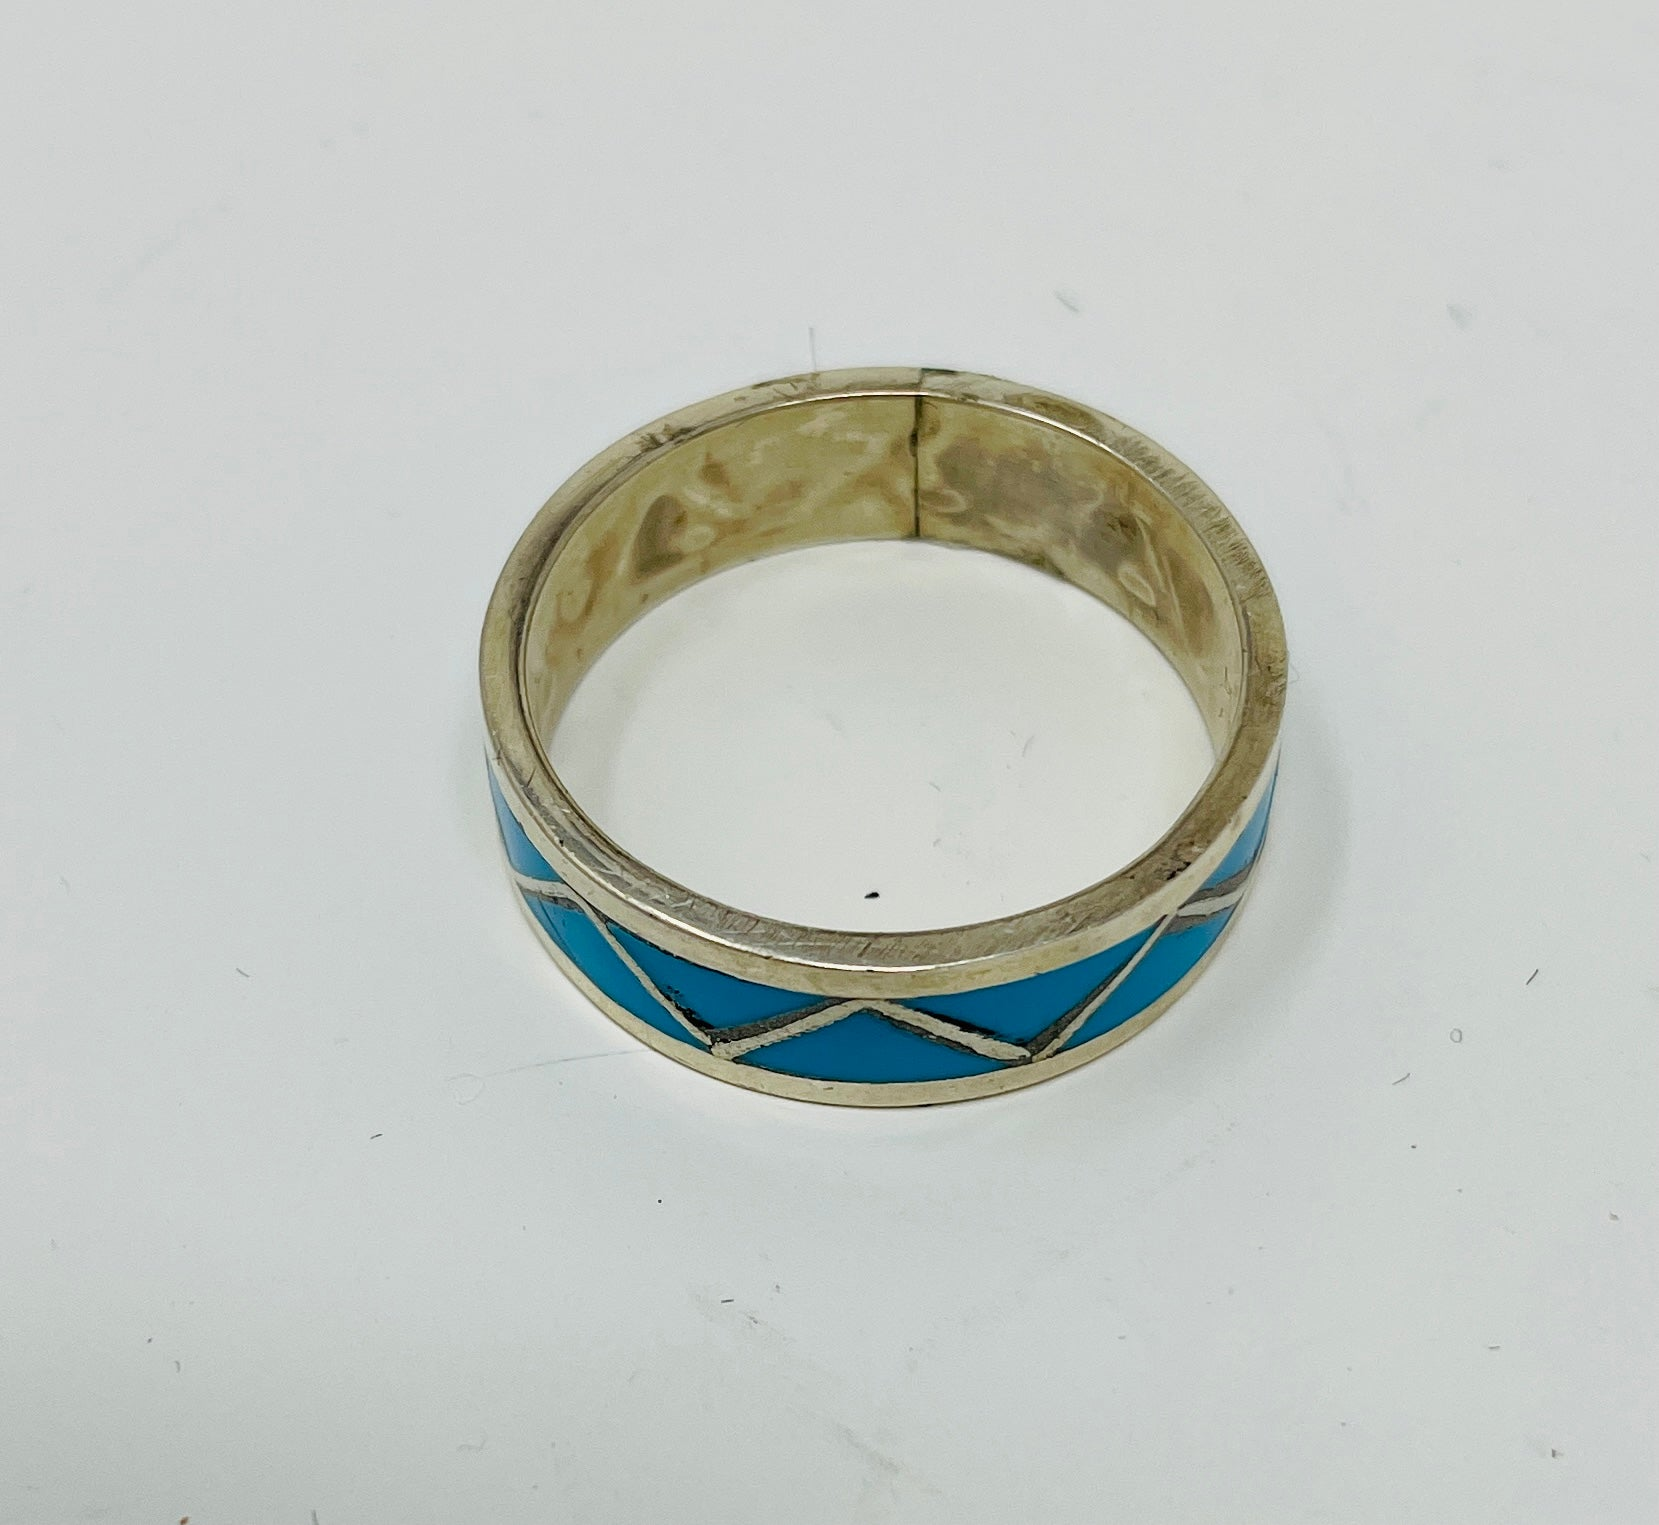 Zuni Chanel Inlay Ring with Turquoise